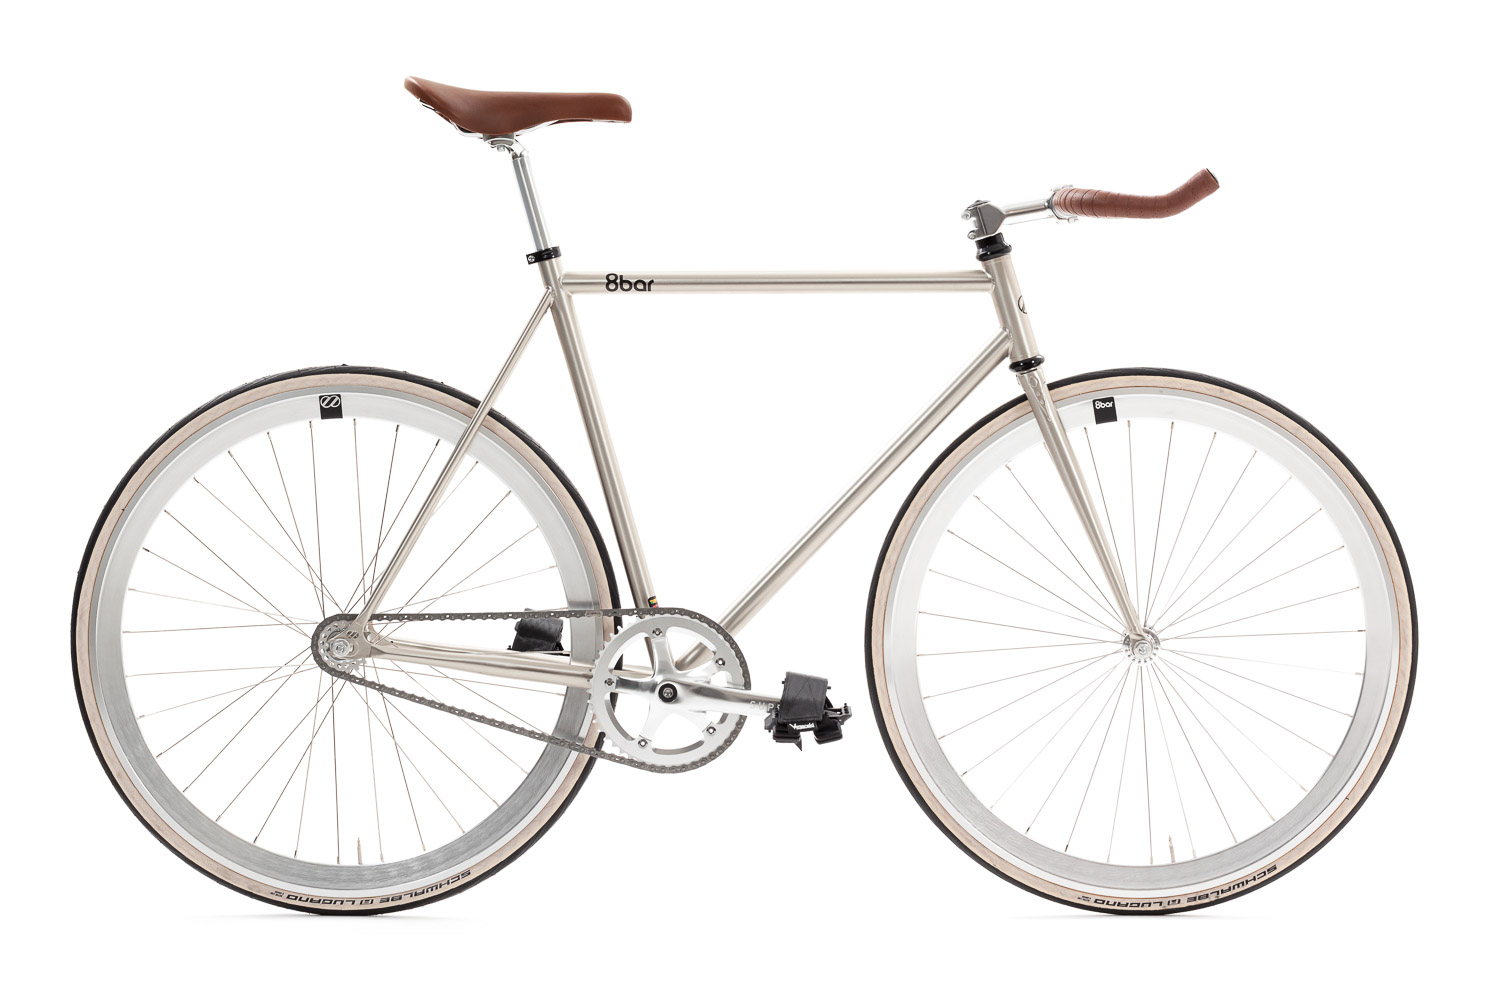 8bar-neukln-comp-bullhorn-fixie-fixed-gear-1